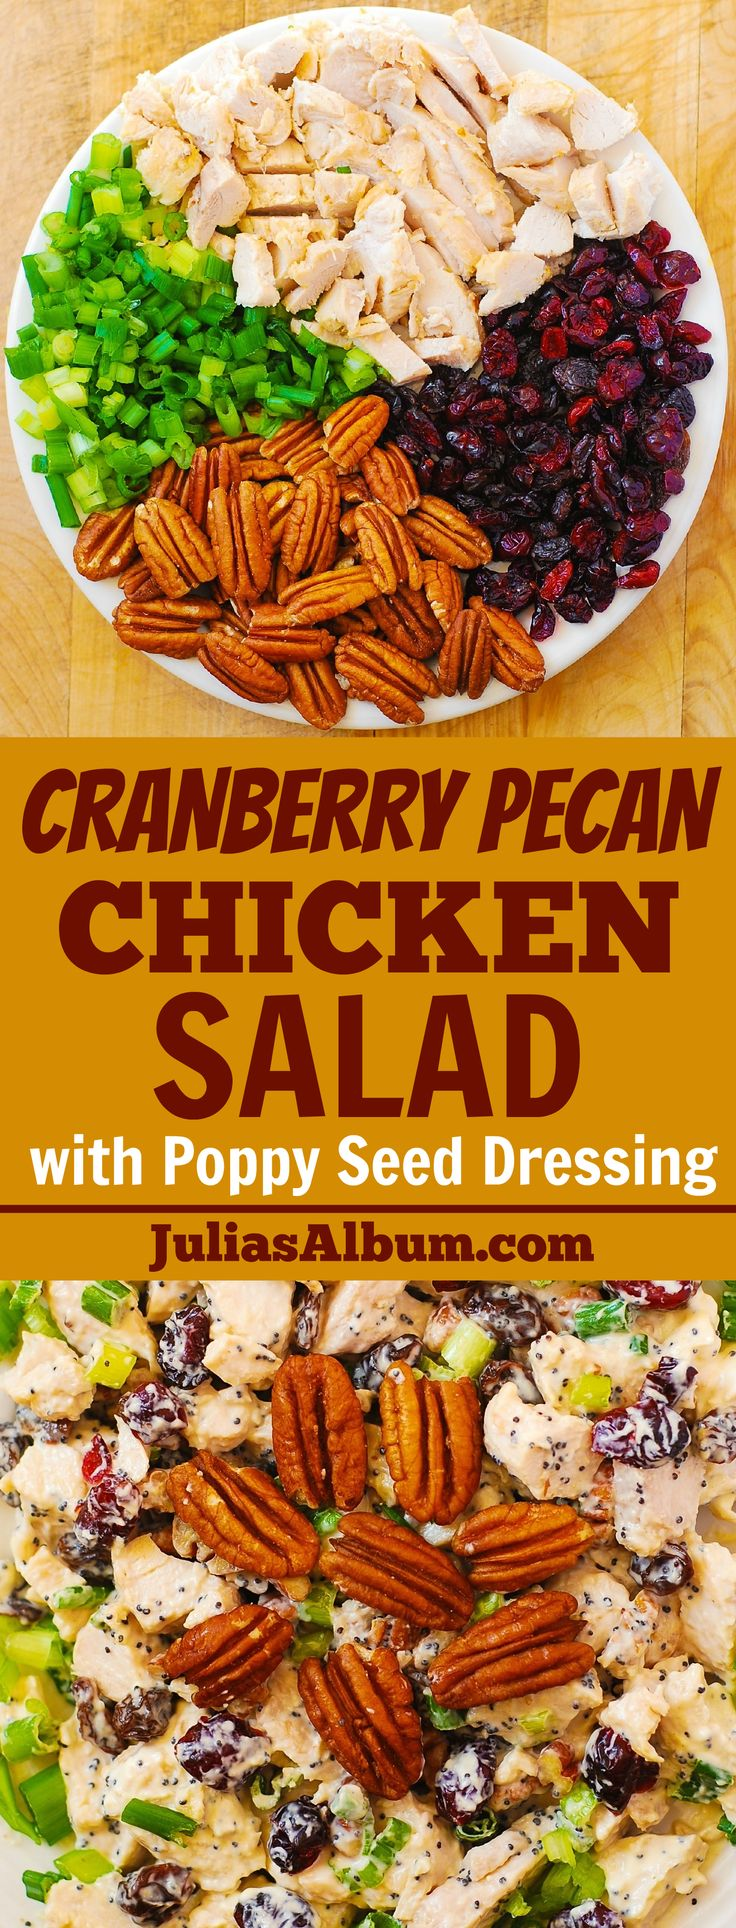 Cranberry Pecan Chicken Salad with Poppy Seed Dressing - also great for leftover Thanksgiving turkey meat! Gluten free holiday recipe.